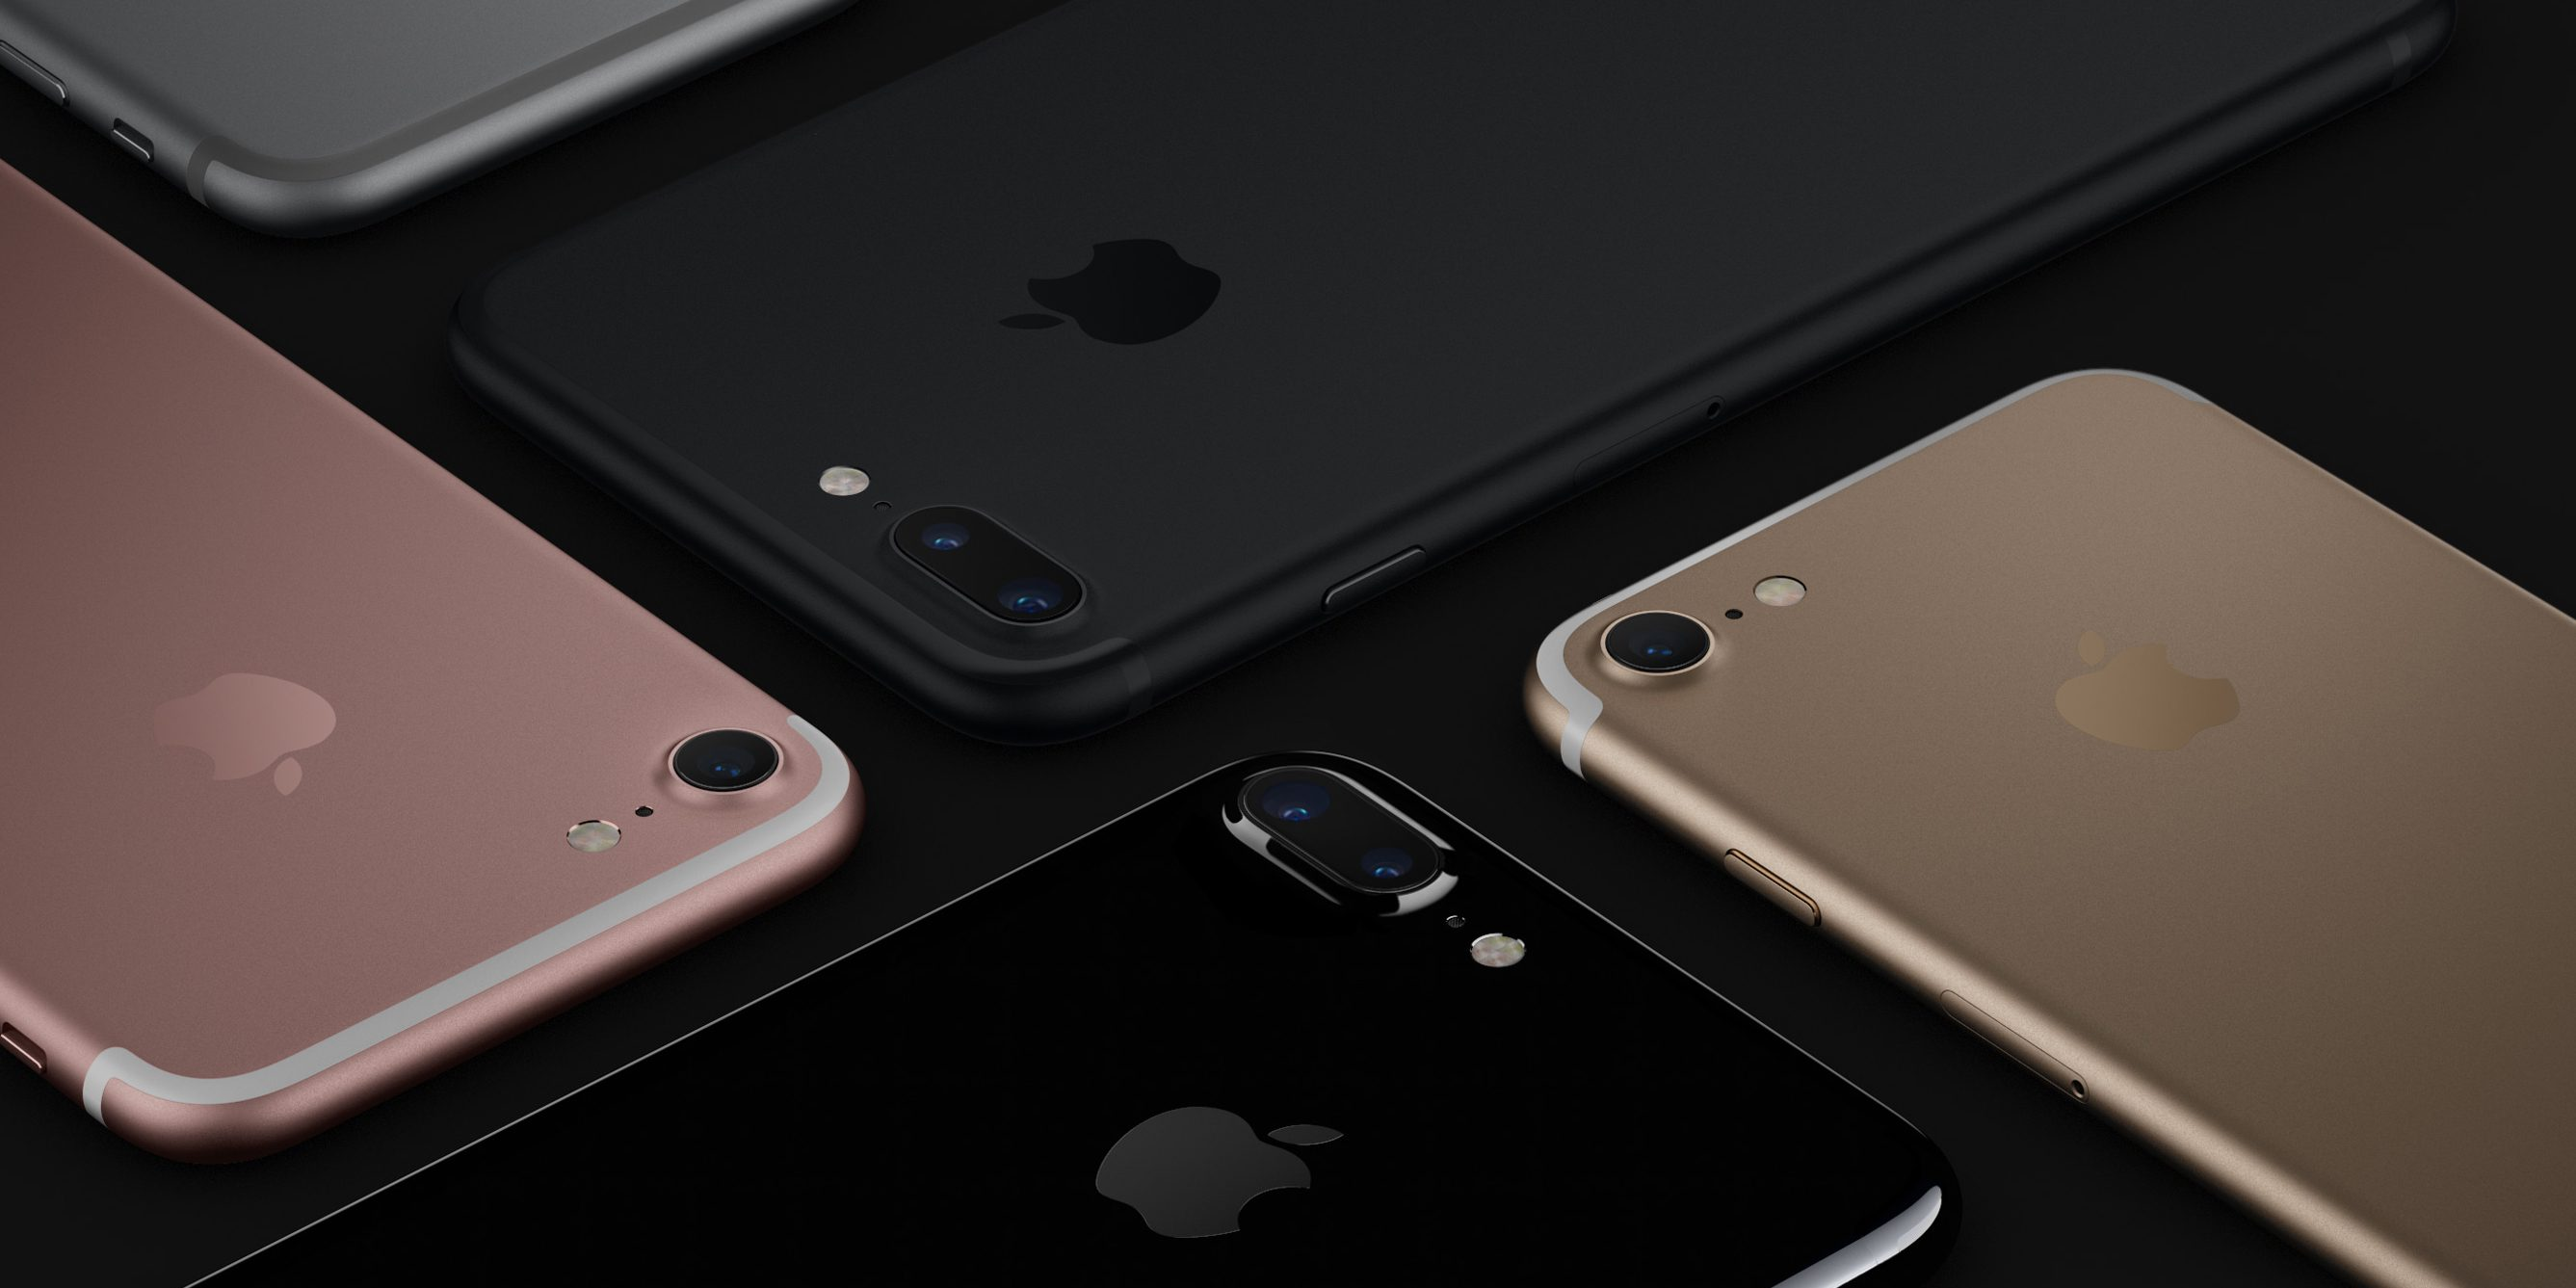 Apple launches repair program for iPhone 7 users with 'No Service' issues